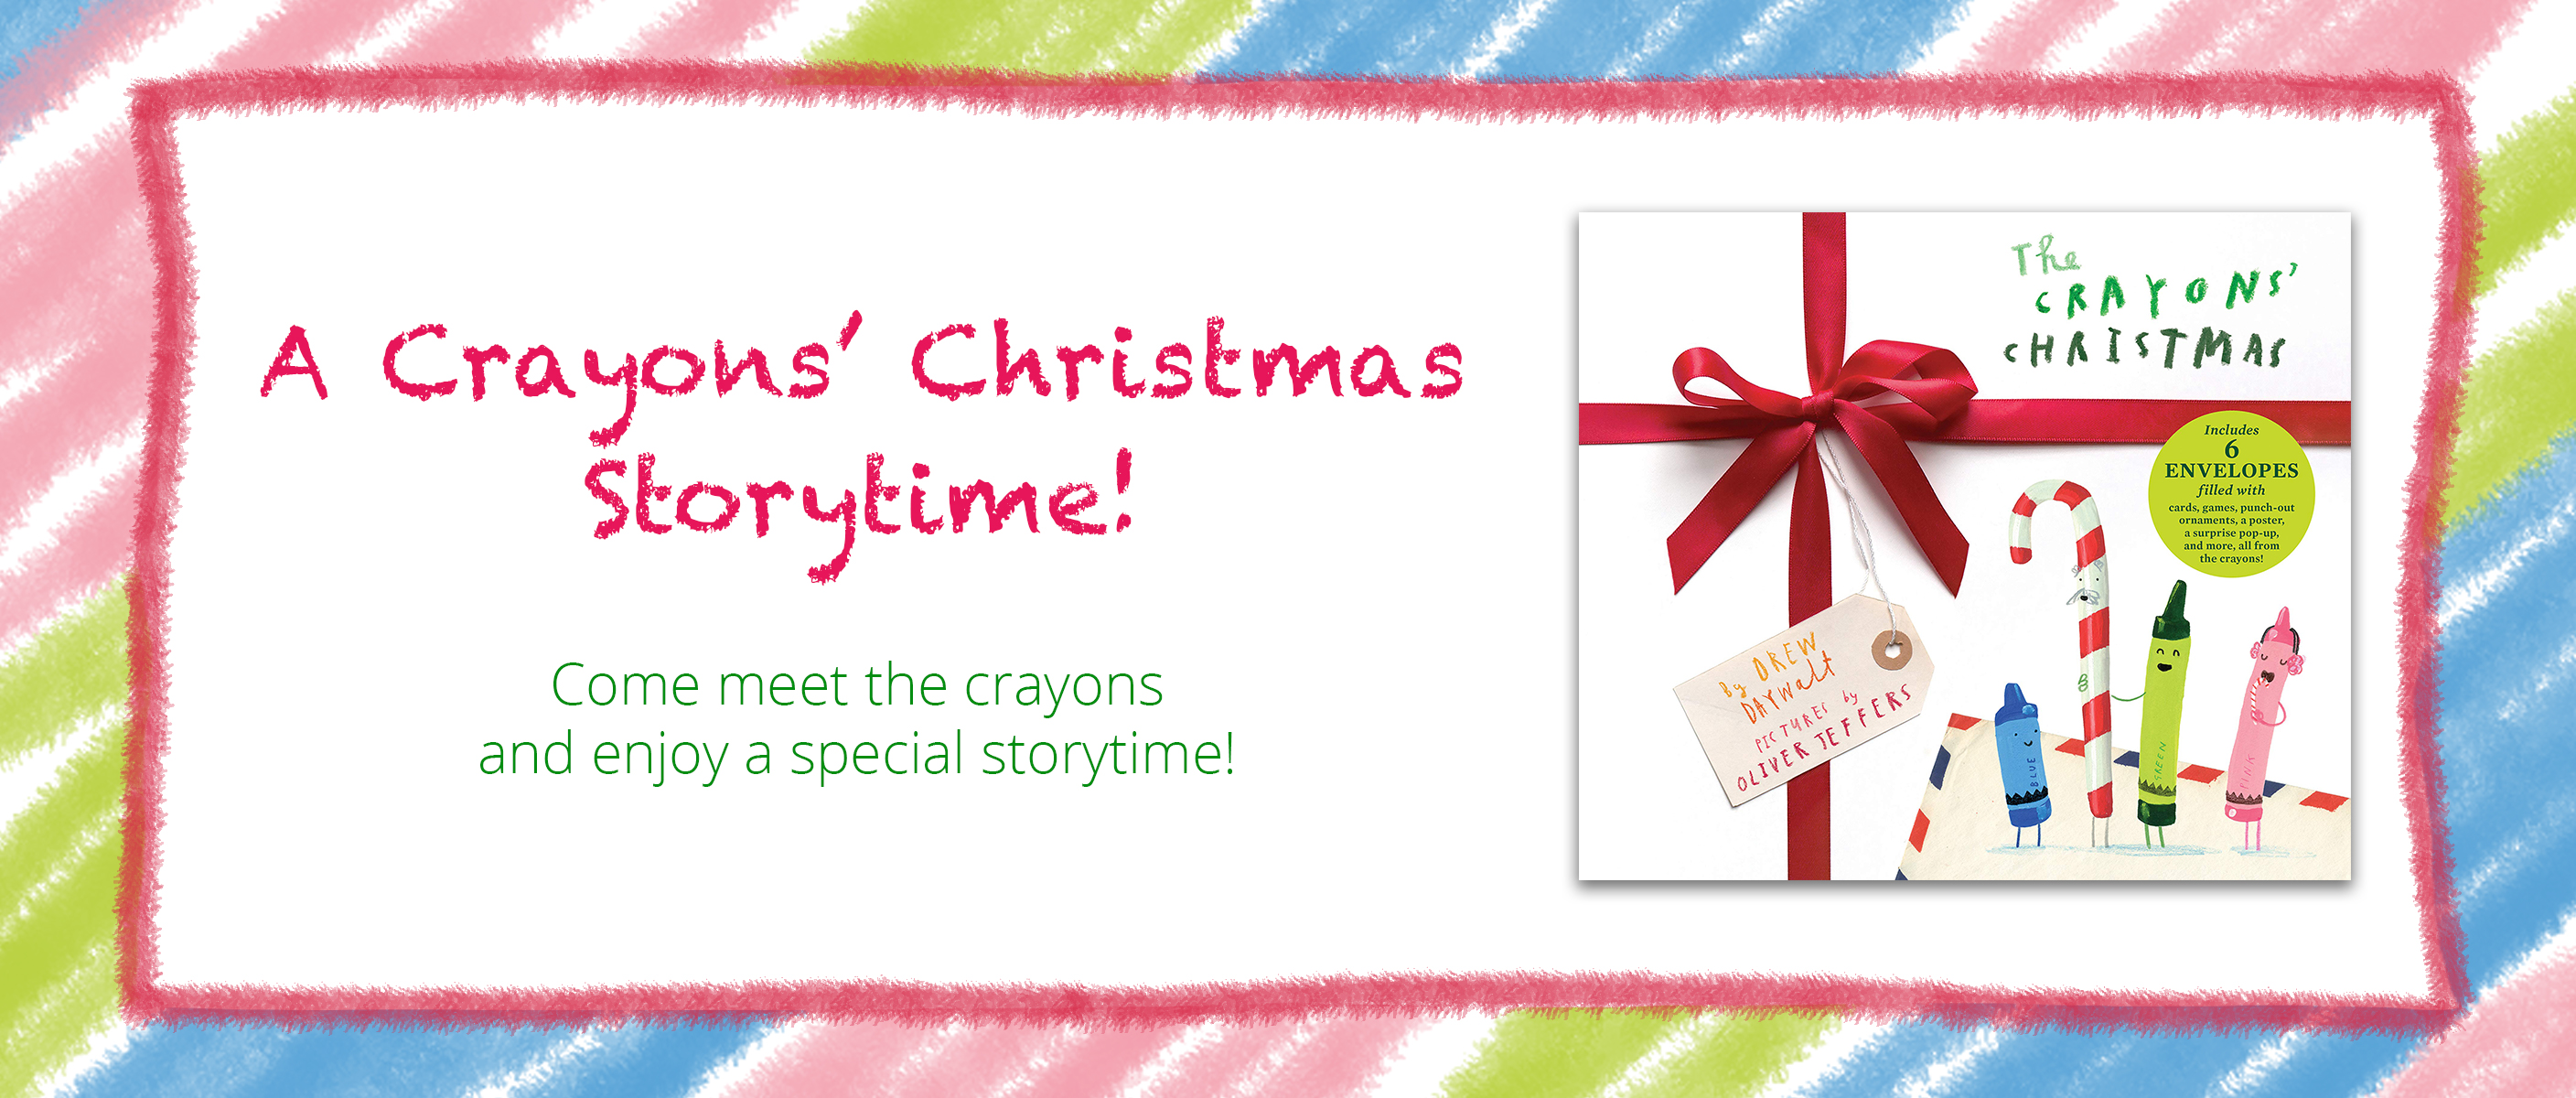 A Crayons' Christmas Storytime